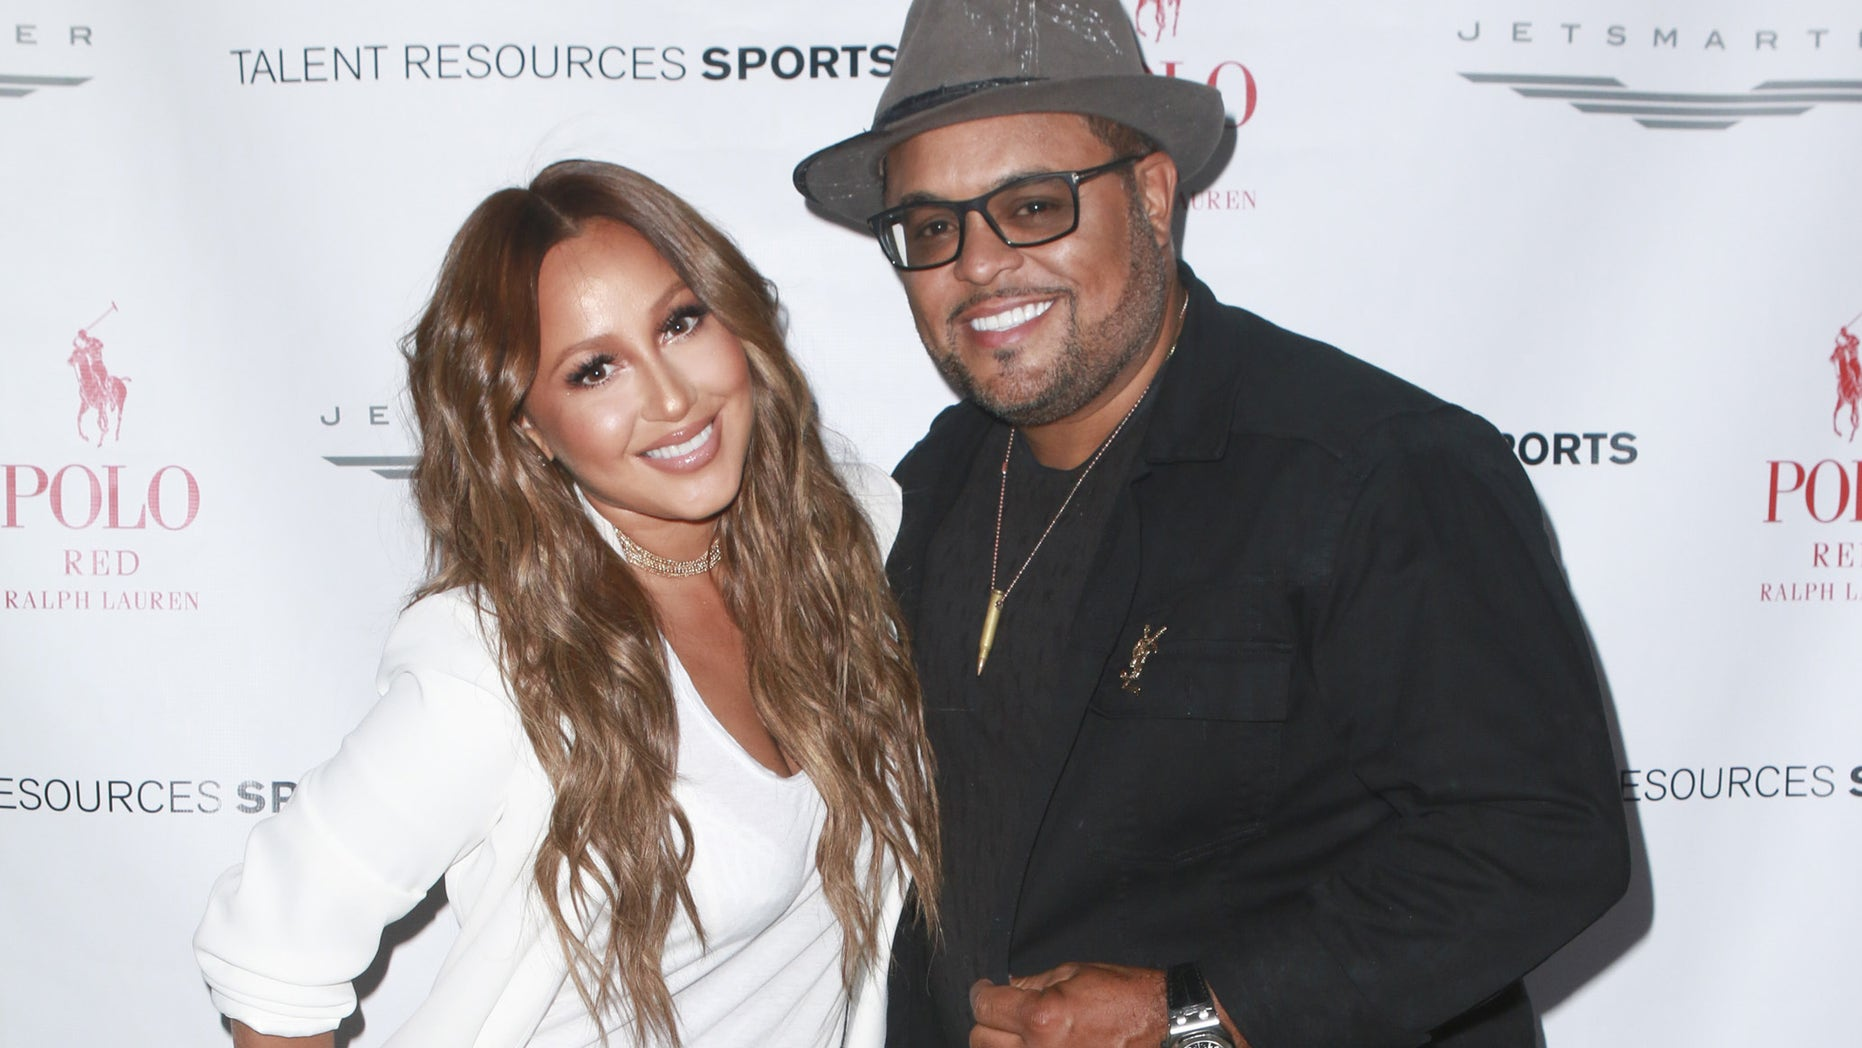 LOS ANGELES, CA - JULY 12: TV Personality Adrienne Bailon (L) and Israel Houghton attends 2016 ESPYs Talent Resources Sports Luxury Lounge on July 12, 2016 in Los Angeles, California.  (Photo by Tasia Wells/Getty Images for Talent Resources Sports )